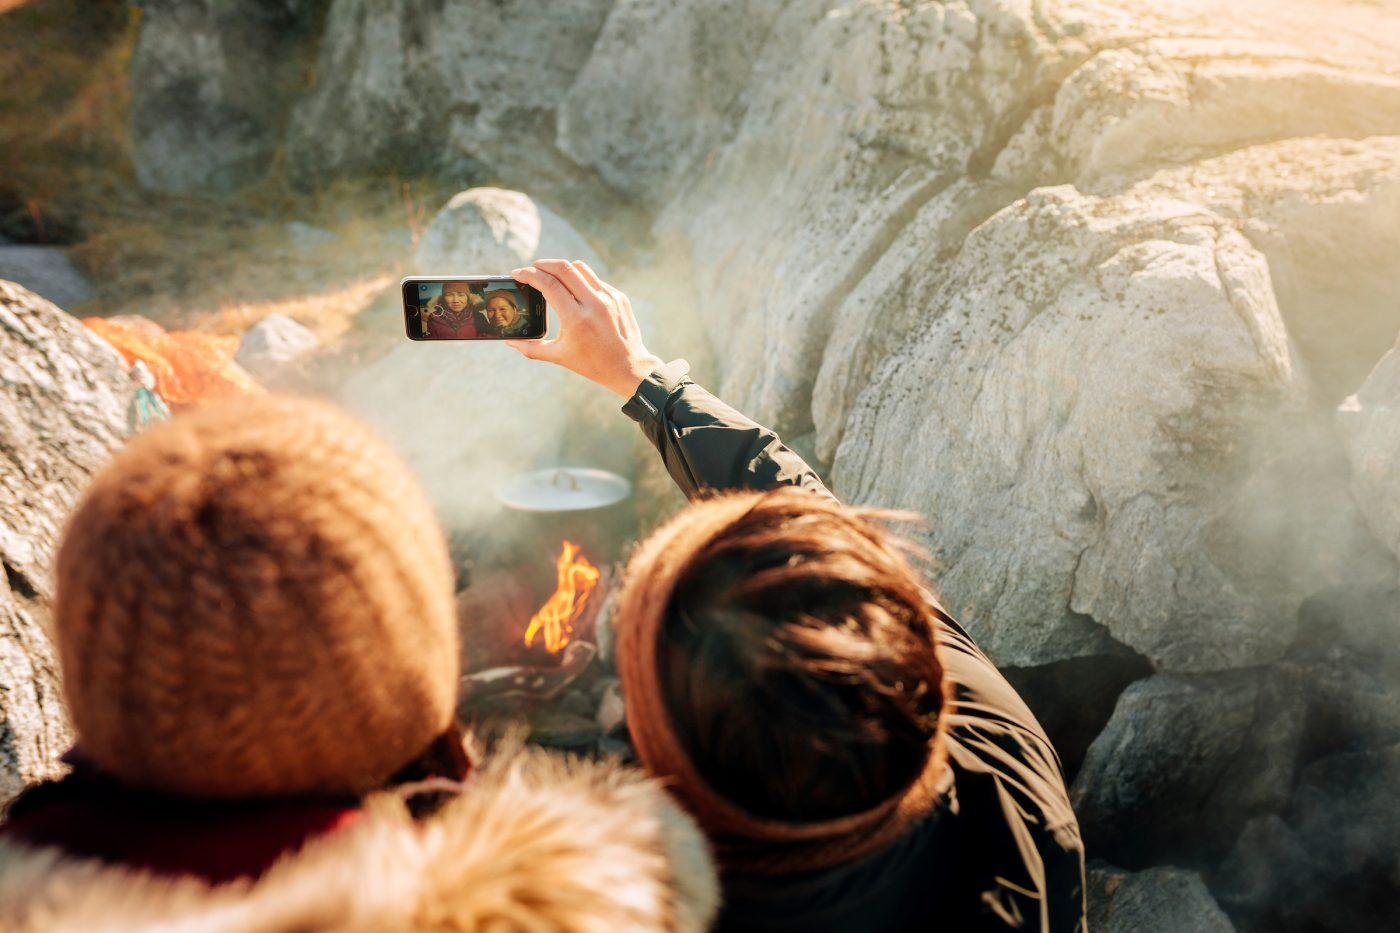 Two women taking a selfie by the fire on the beach in Nuuk in Greenland. Photo by Rebecca Gustafsson